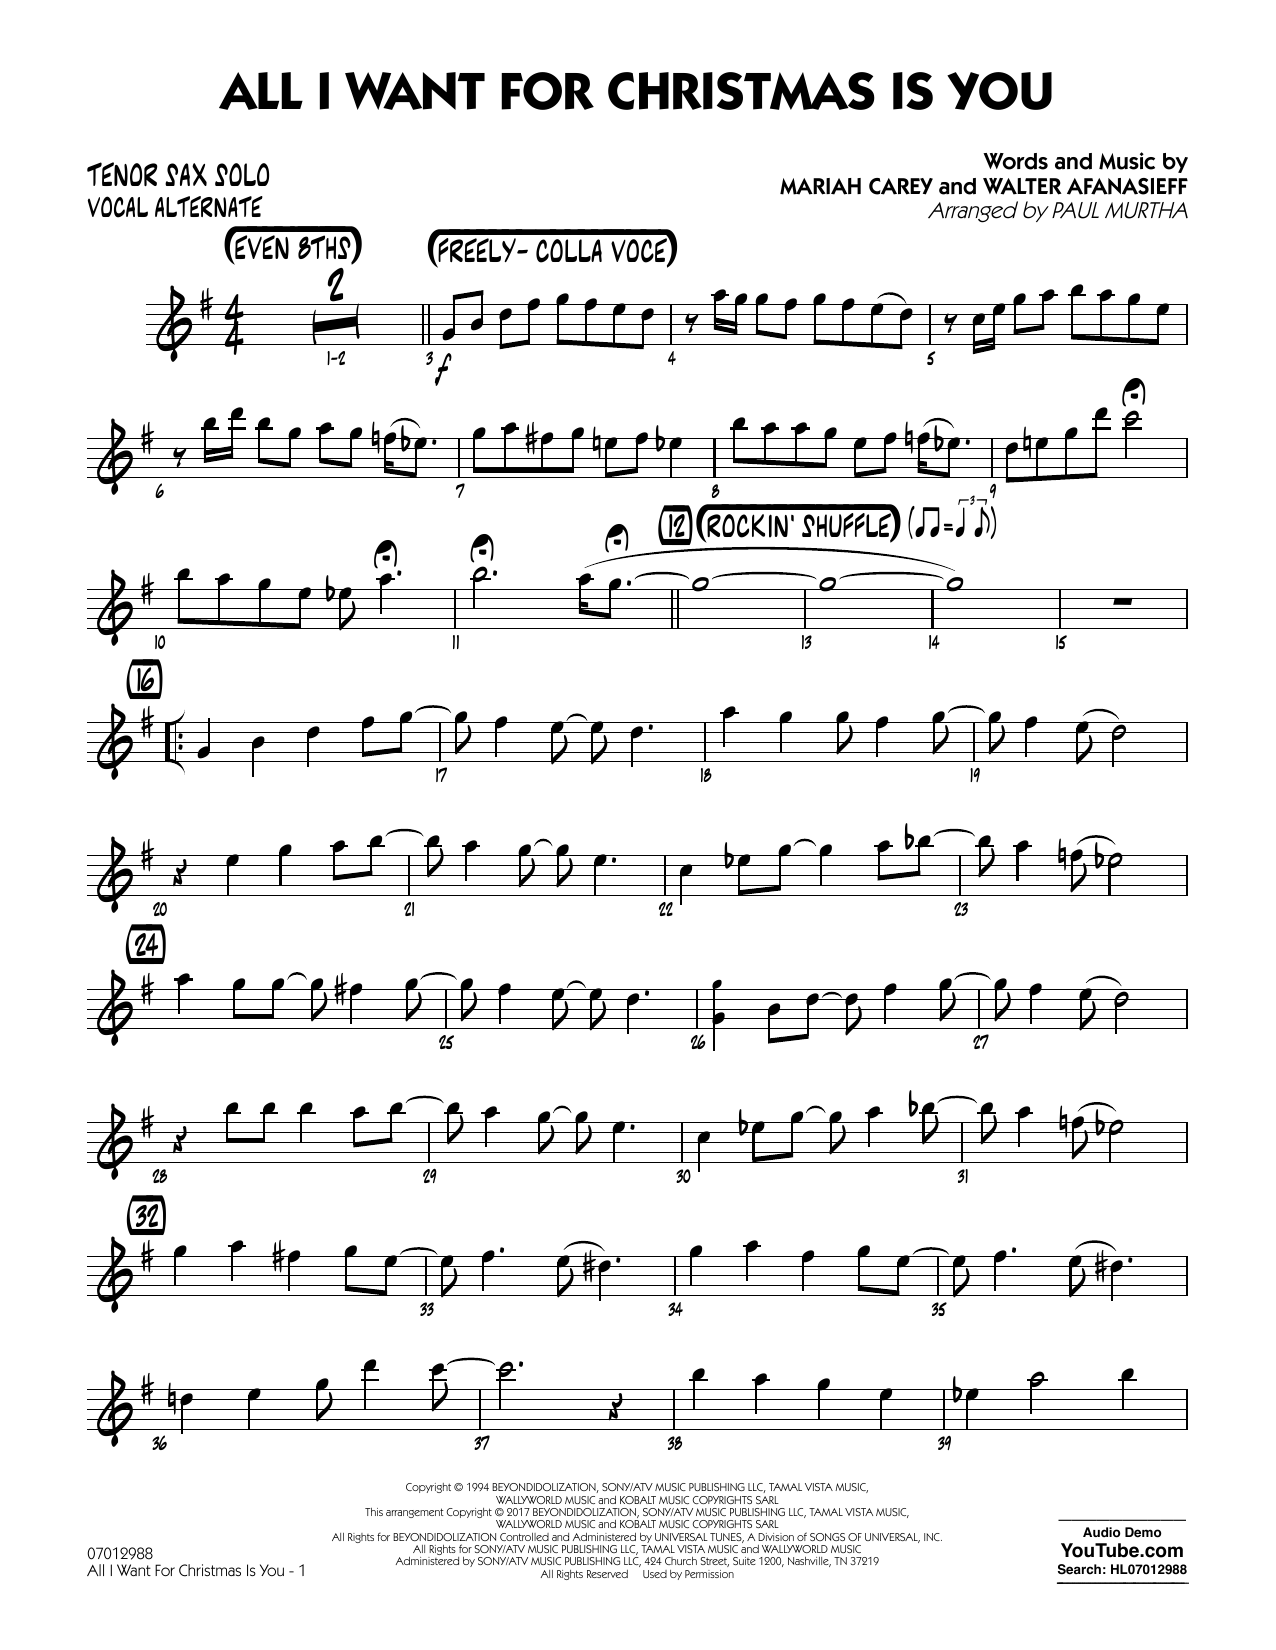 Paul Murtha All I Want for Christmas Is You - Tenor Sax Solo (Vocal Alt) sheet music notes and chords. Download Printable PDF.